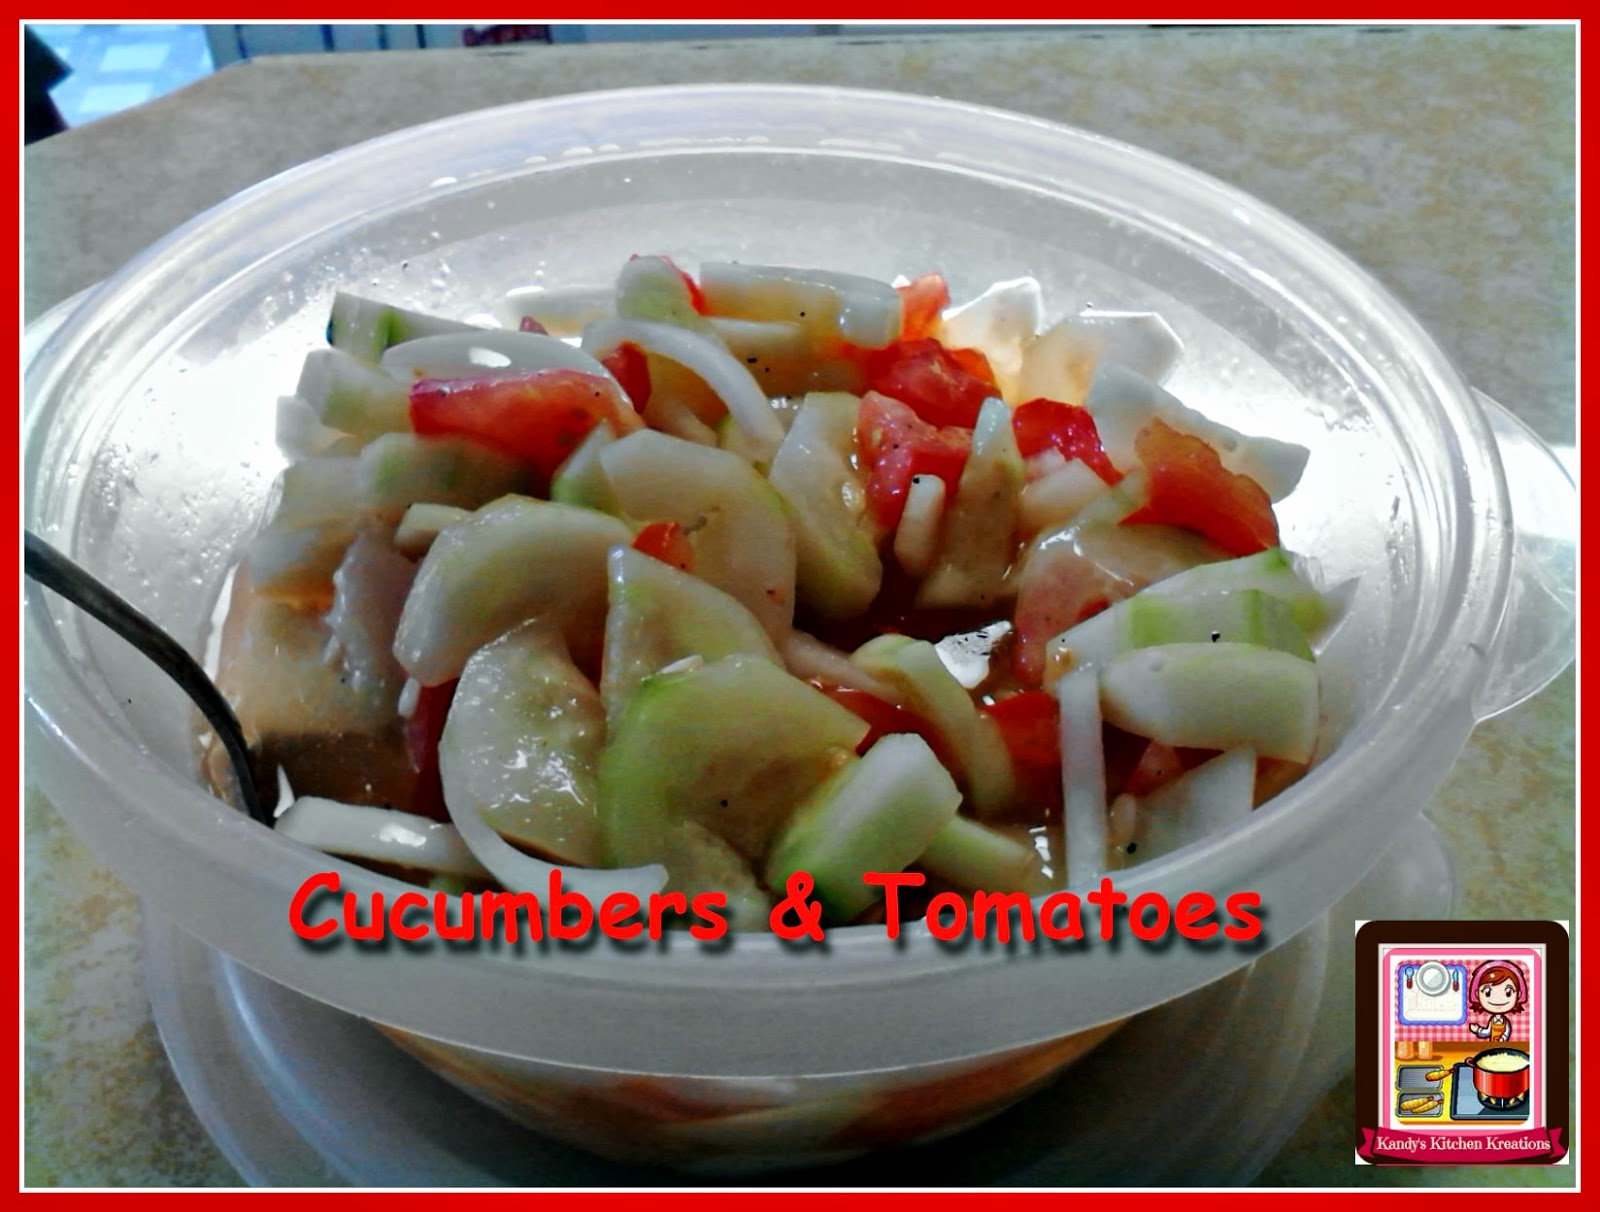 Kandys Kitchen Kreations Cucumbers Amp Tomatoes